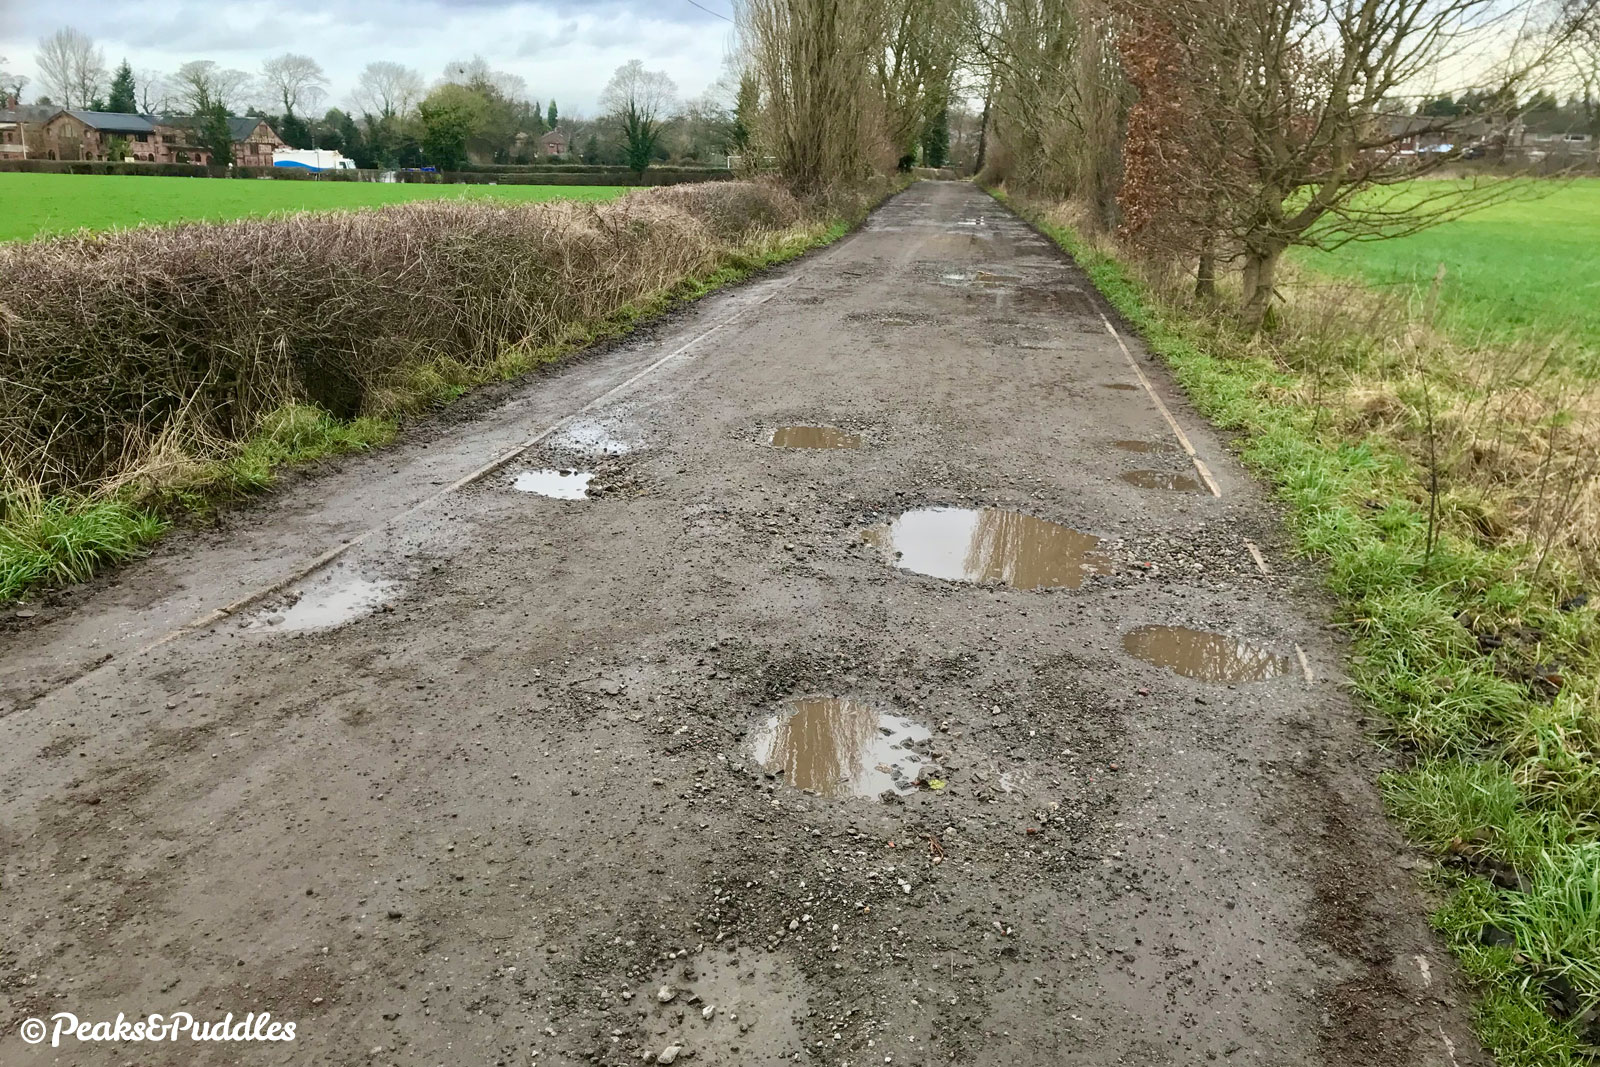 In winter, the potholes are suitably filled with water - at least making them easier to spot.